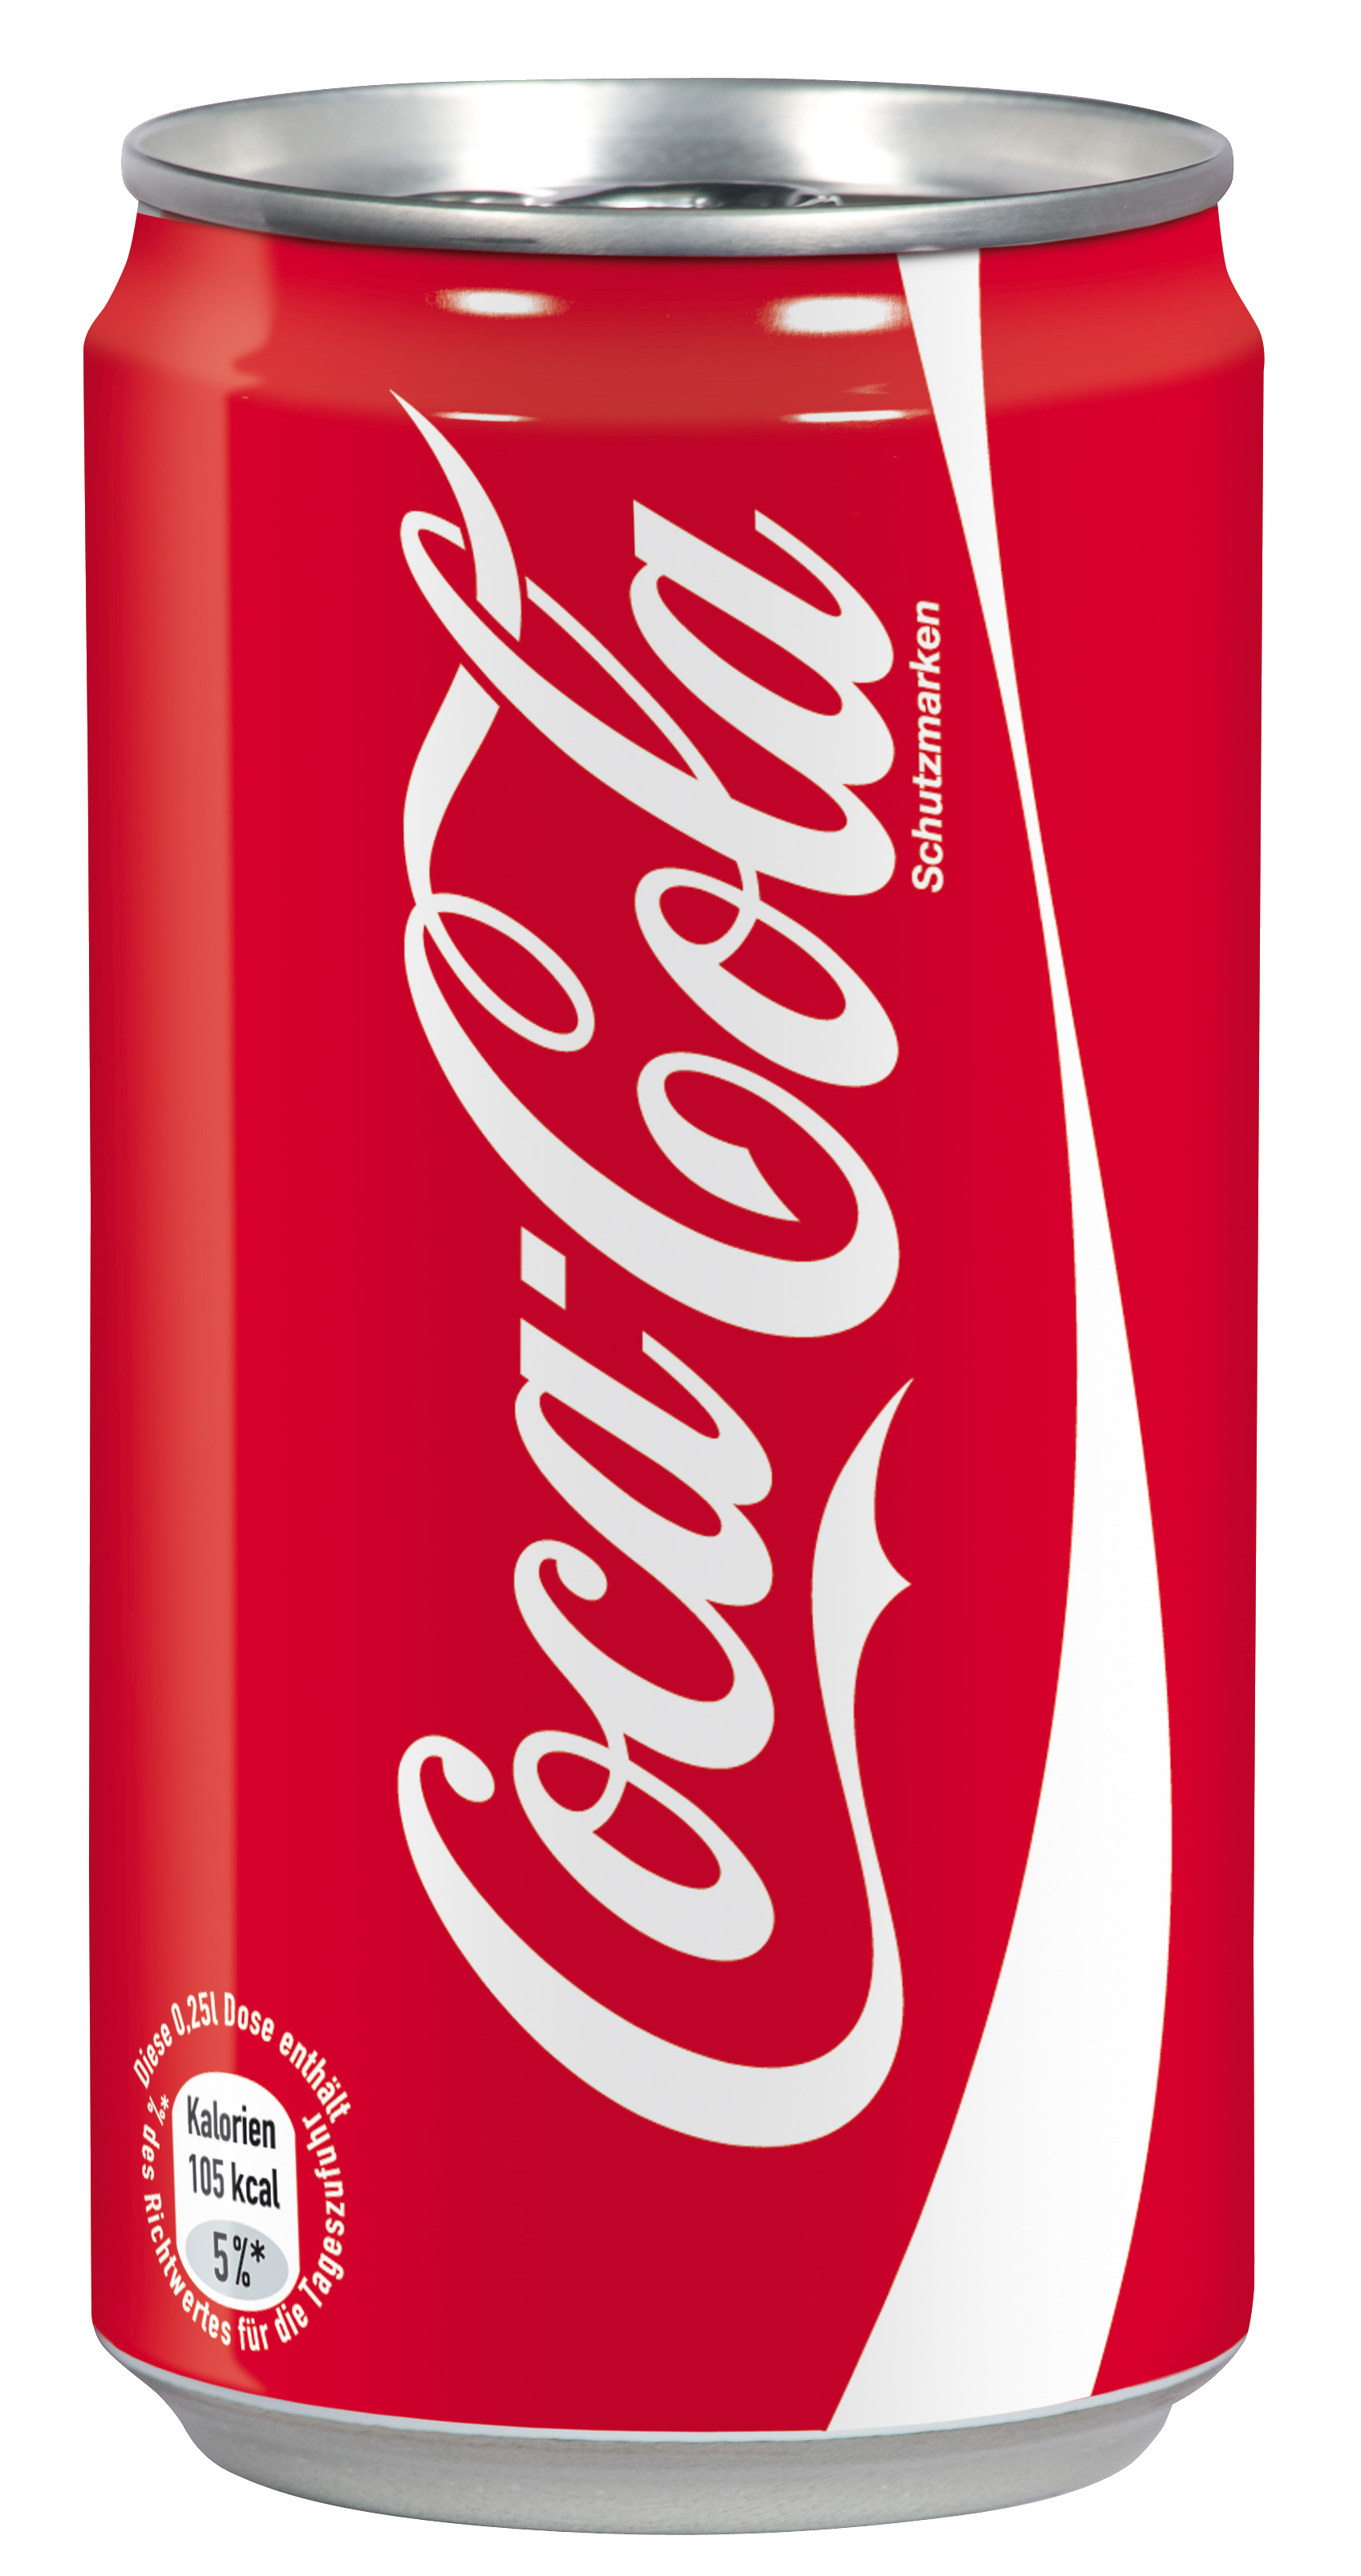 Coca Cola bottle PNG image download free - PNG Cola